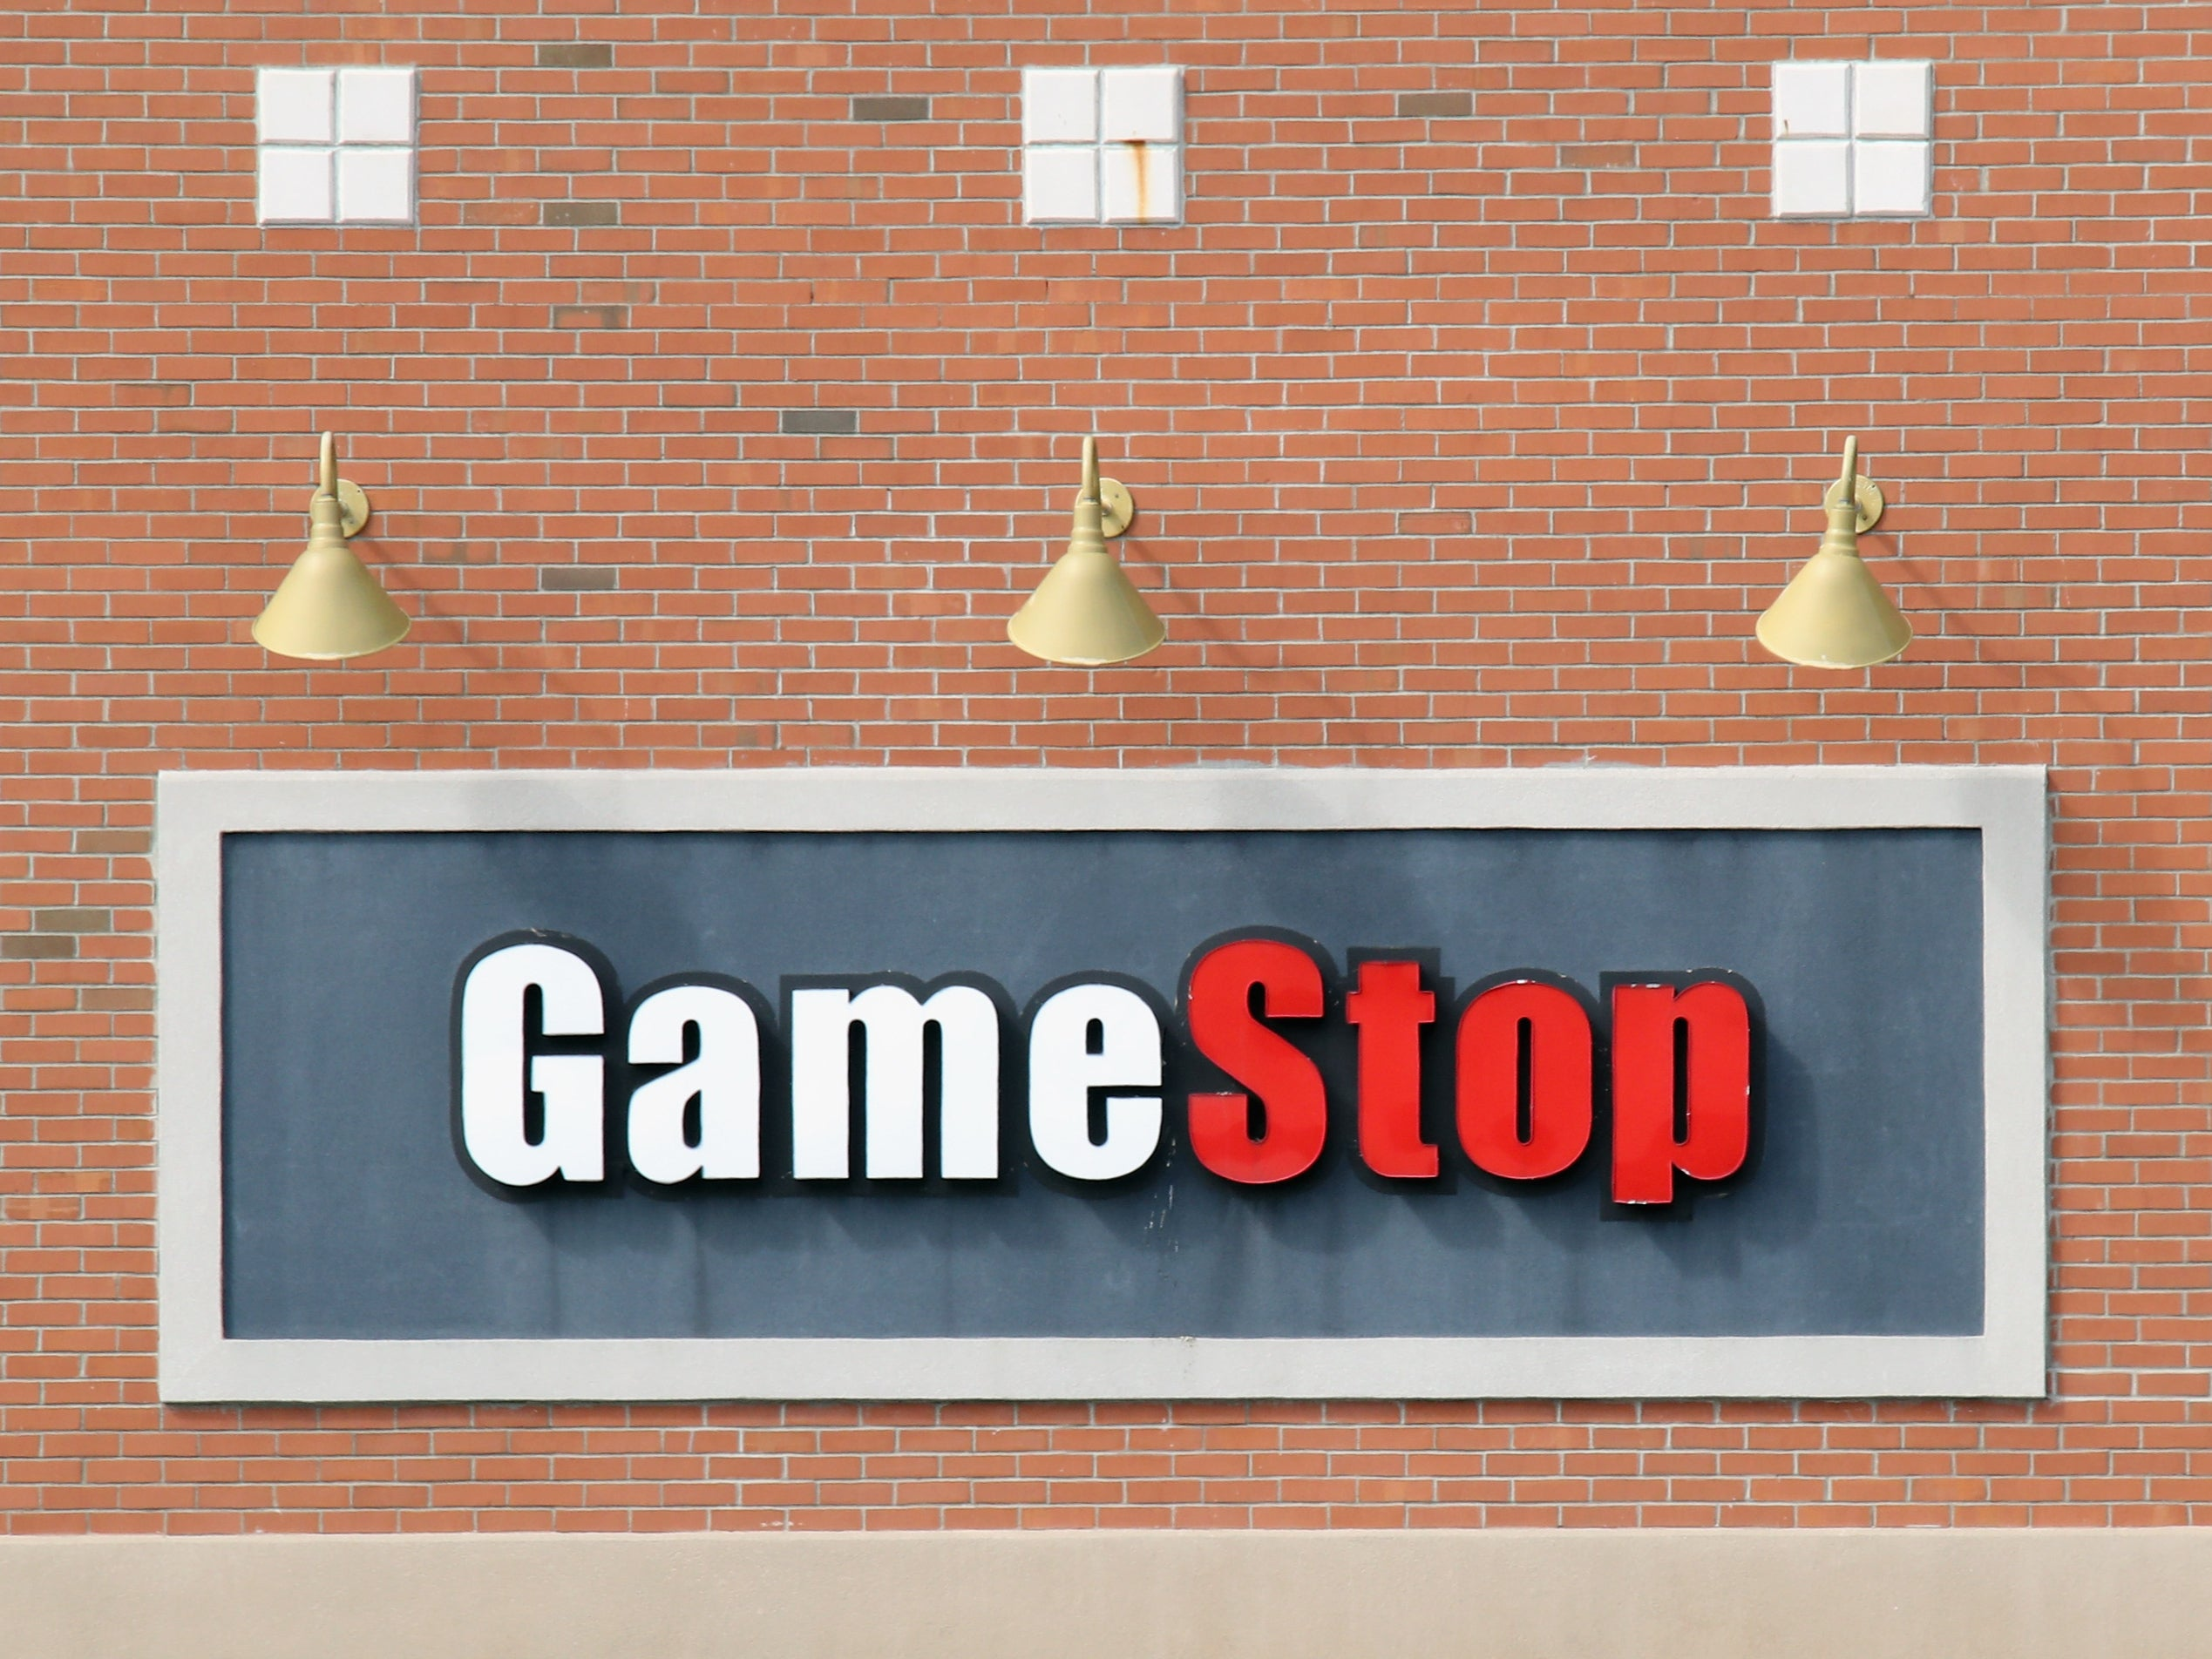 GameSpot: How a fight between Reddit users and Wall Street bankers saw video game company's stock increase tenfold